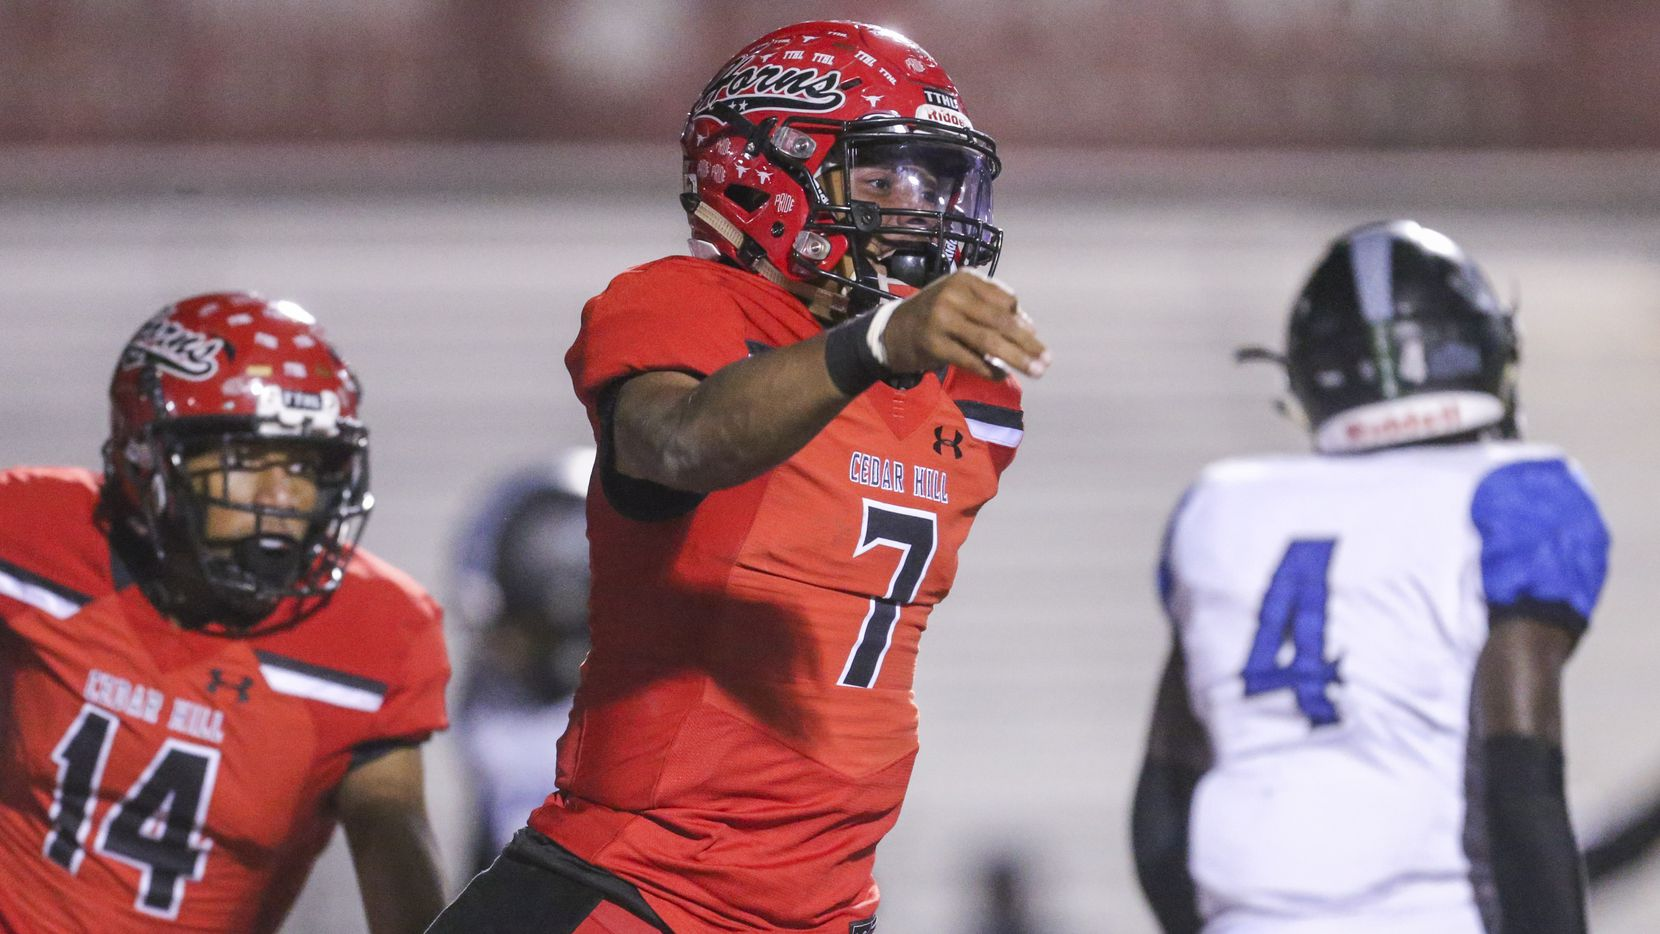 Cedar Hill quarterback Kaidon Salter (7) celebrates his touchdown during the first half of a high school football game between Cedar HIll and Mansfield Summit on Friday, October 11, 2019 at Longhorn Stadium in Cedar Hill, Texas. (Shaban Athuman/Staff Photographer)